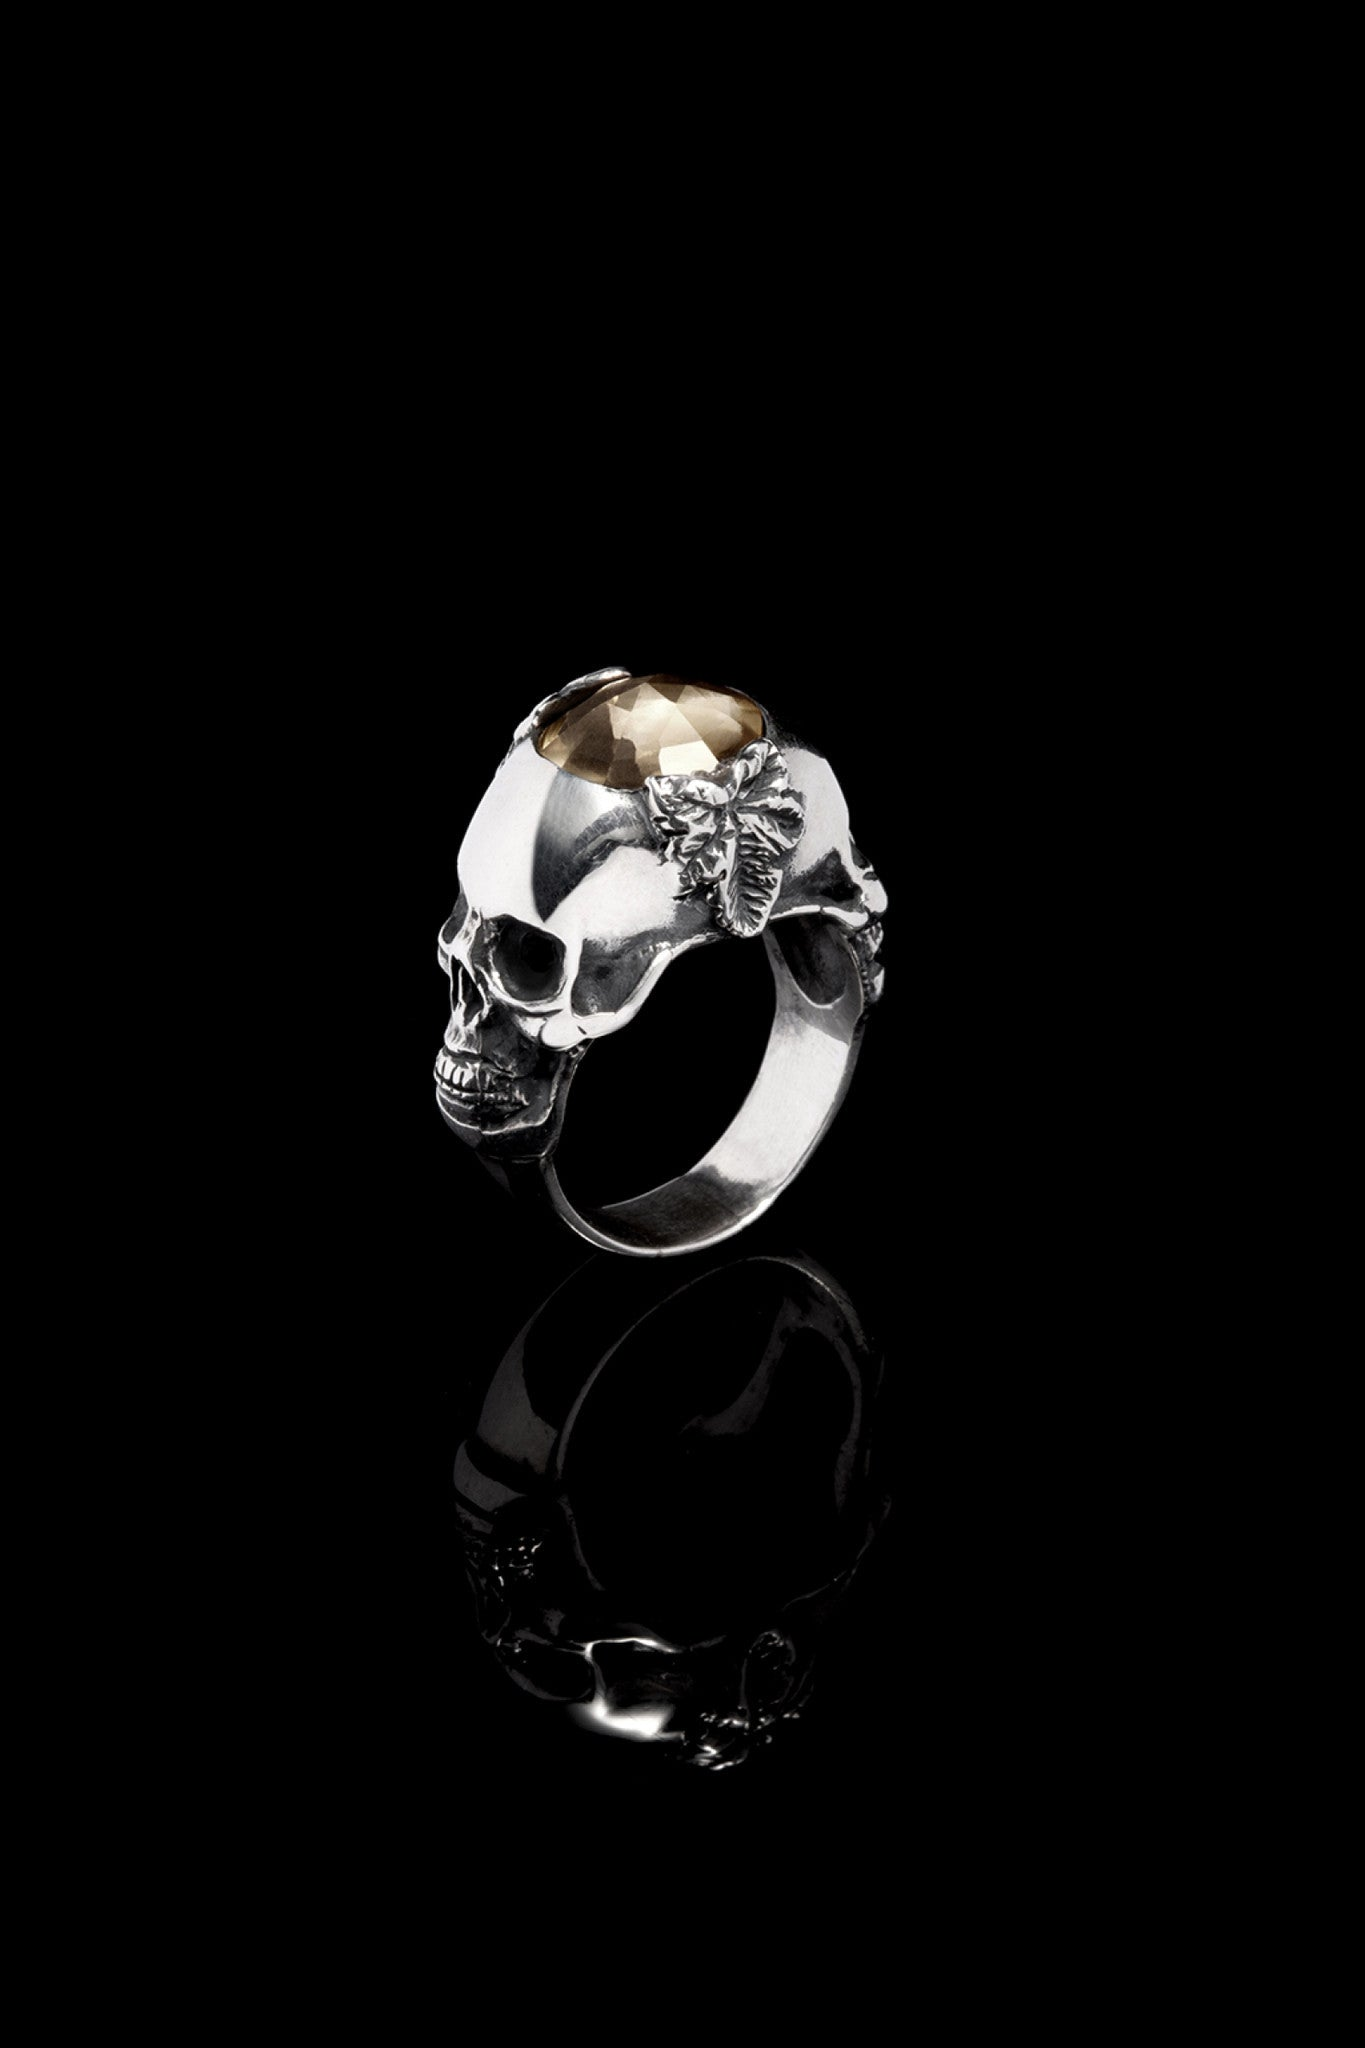 Ugo Cacciatori, Silver, Jewelry, Sterling Silver, Ring, Smoky Quartz, Smoky Quartz and Black Diamonds, Smoky Quartz and Brown Diamonds, Smoky Quartz and Emeralds, Smoky Quartz and Rubies, Smoky Quartz and Sapphires